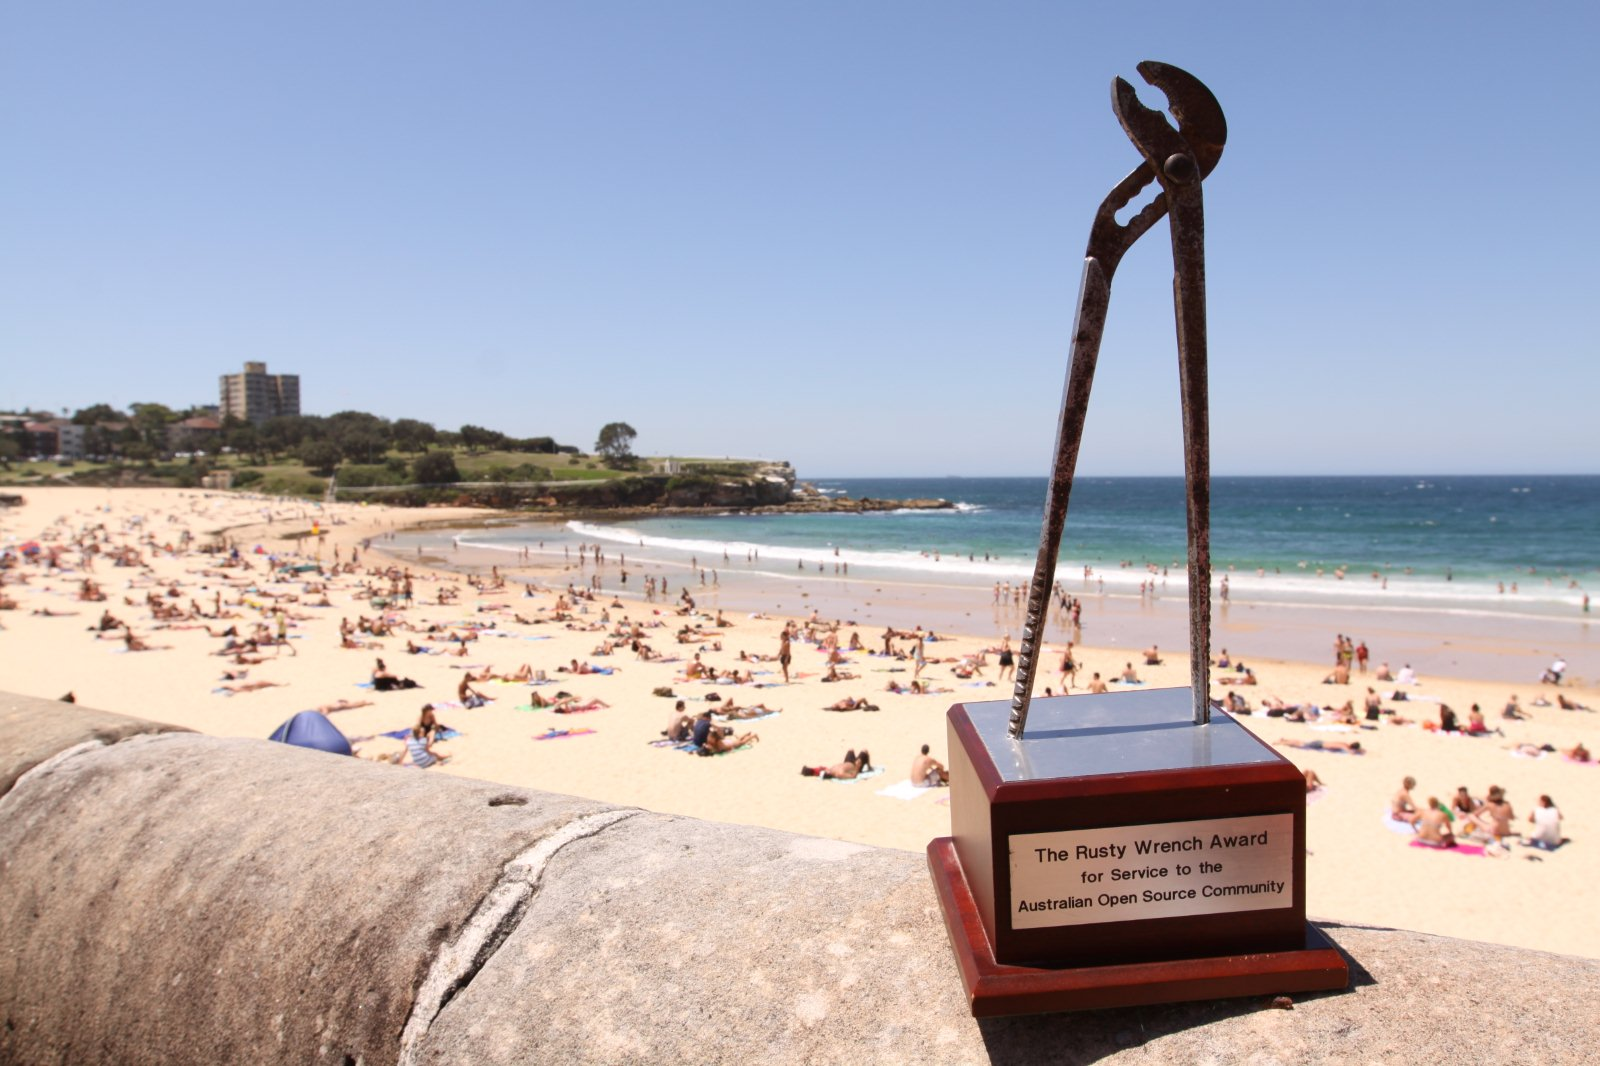 Tim Miller - http://dreamcoatphotography.com - https://www.flickr.com/photos/alborath/8454131835/in/pool-drupalconsydney/ The Rusty Wrench Award for service to the Australian Open Source Community - at Coogee Beach during DrupalCon Sydney the week after linux.conf.au Canberra 2013 where it was awarded to Donna Benjamin.